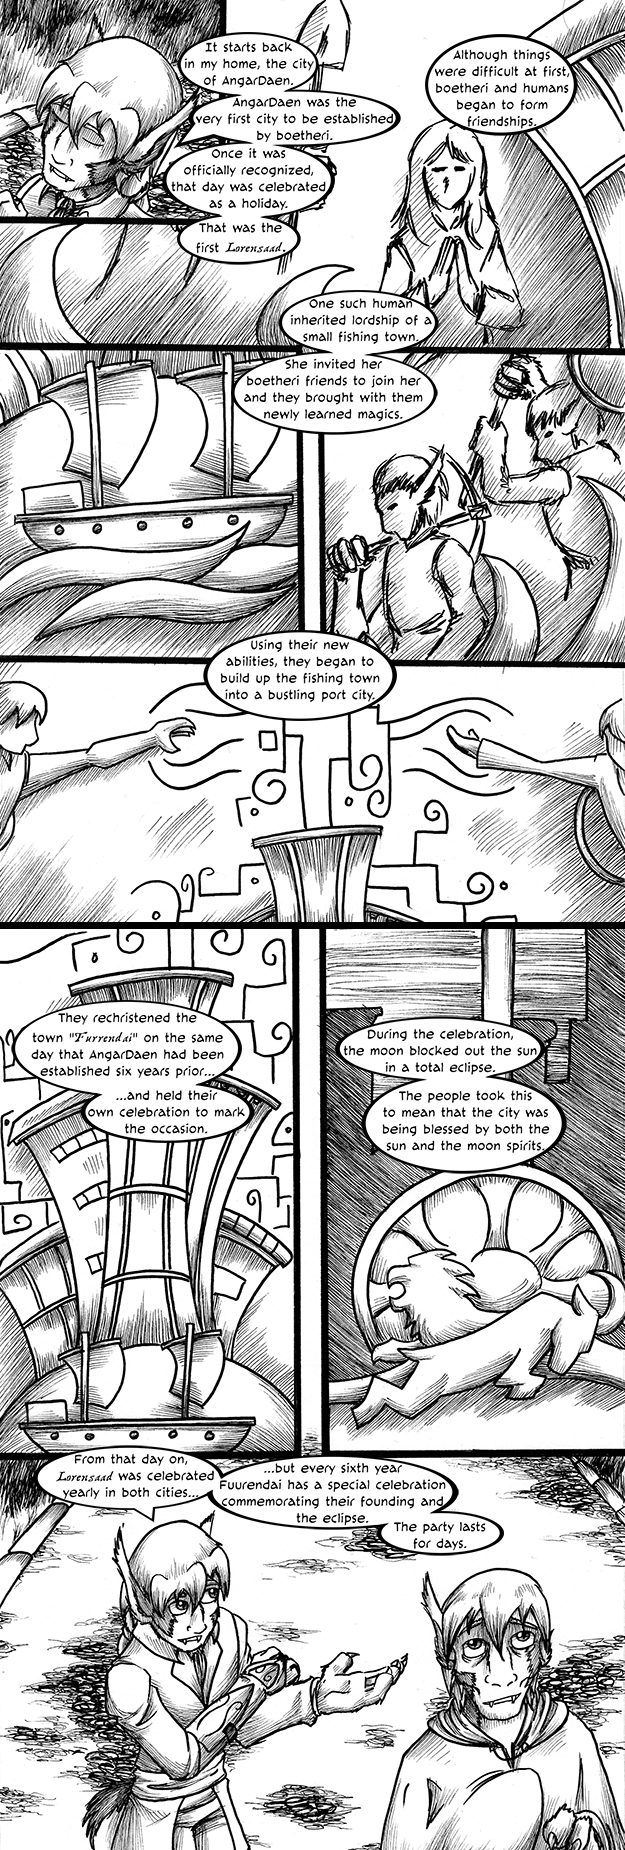 06 Page 13/14